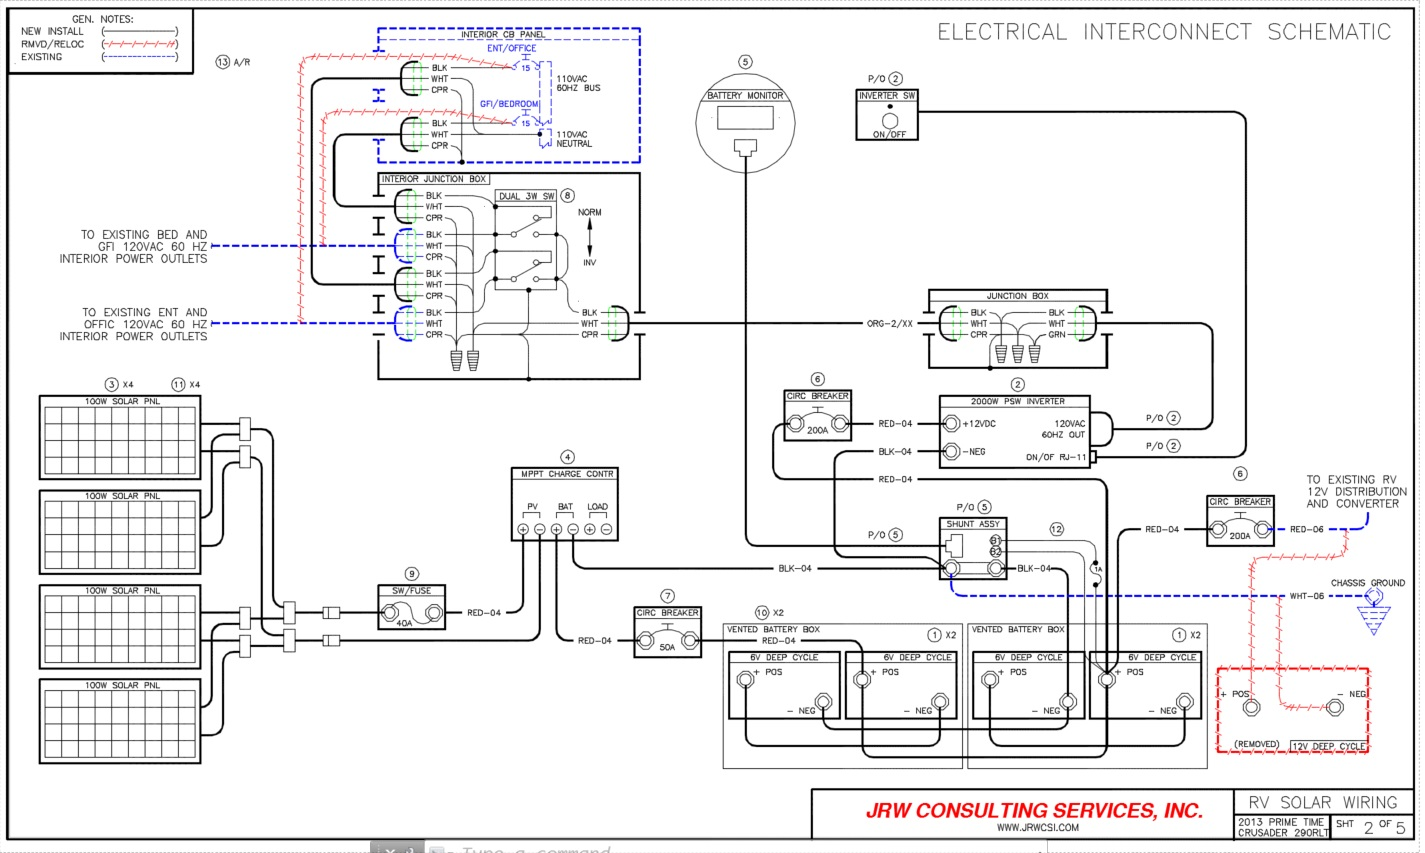 1985 Crusader Boat Wire Diagrams Schematics Diagram Marine Wiring Electrical Simple